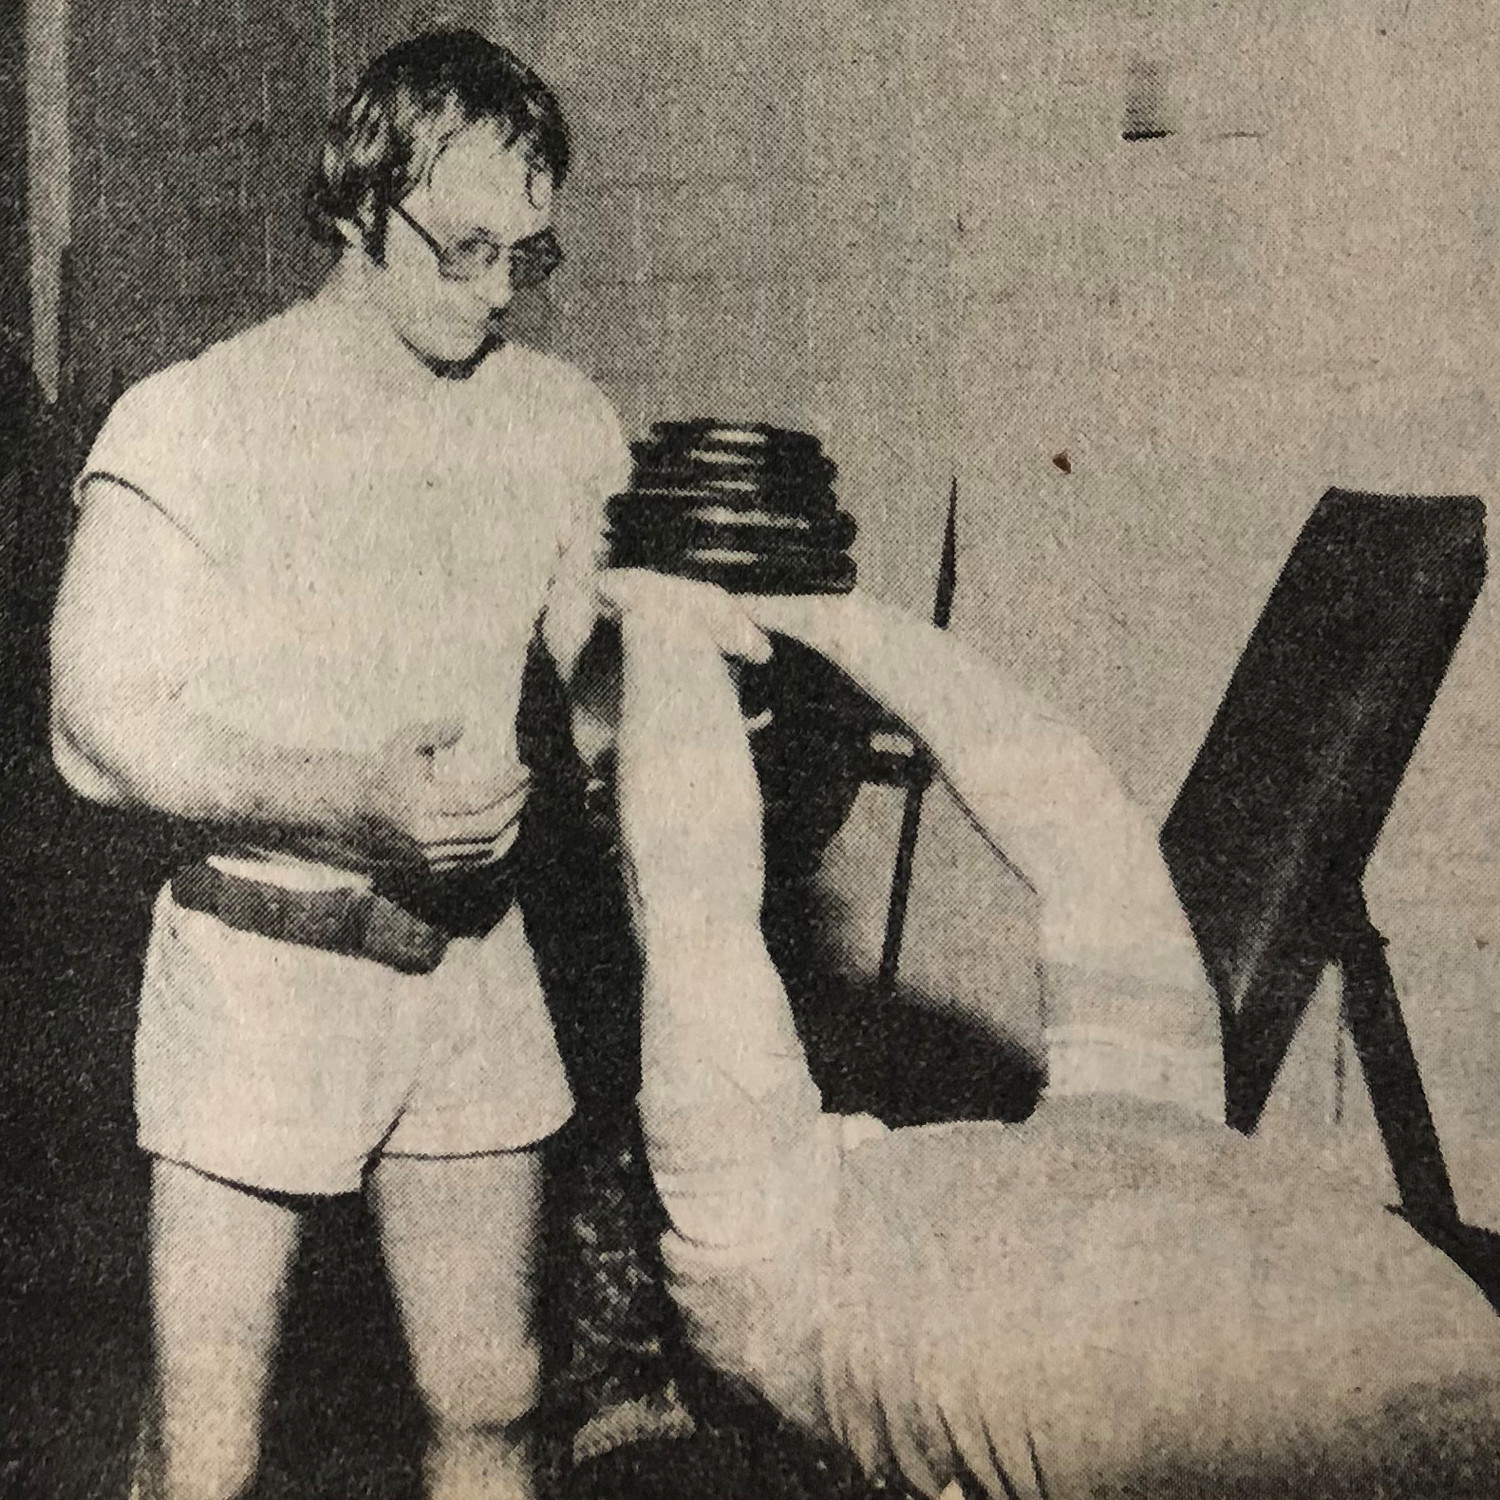 Don Smith spots Steve Markus doing dumbbell pullovers.